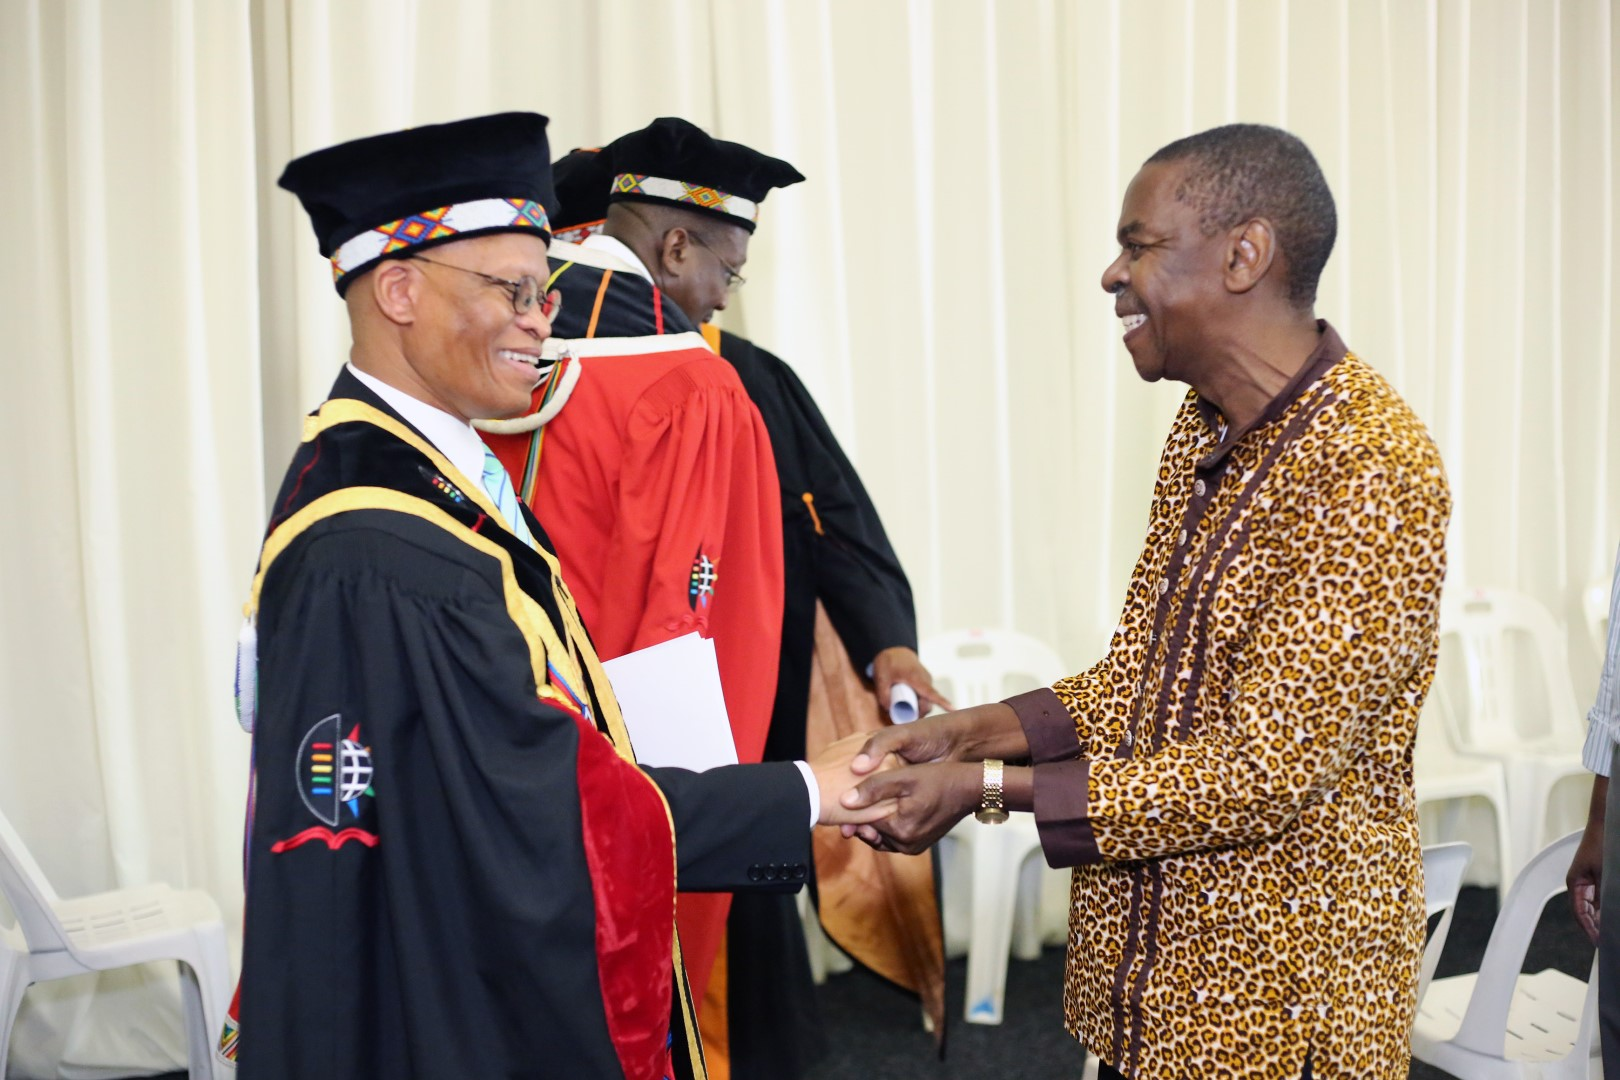 Chancellor Chief Justice Mogoeng Mogoeng shares a light hearted greeting with Protas Madlada